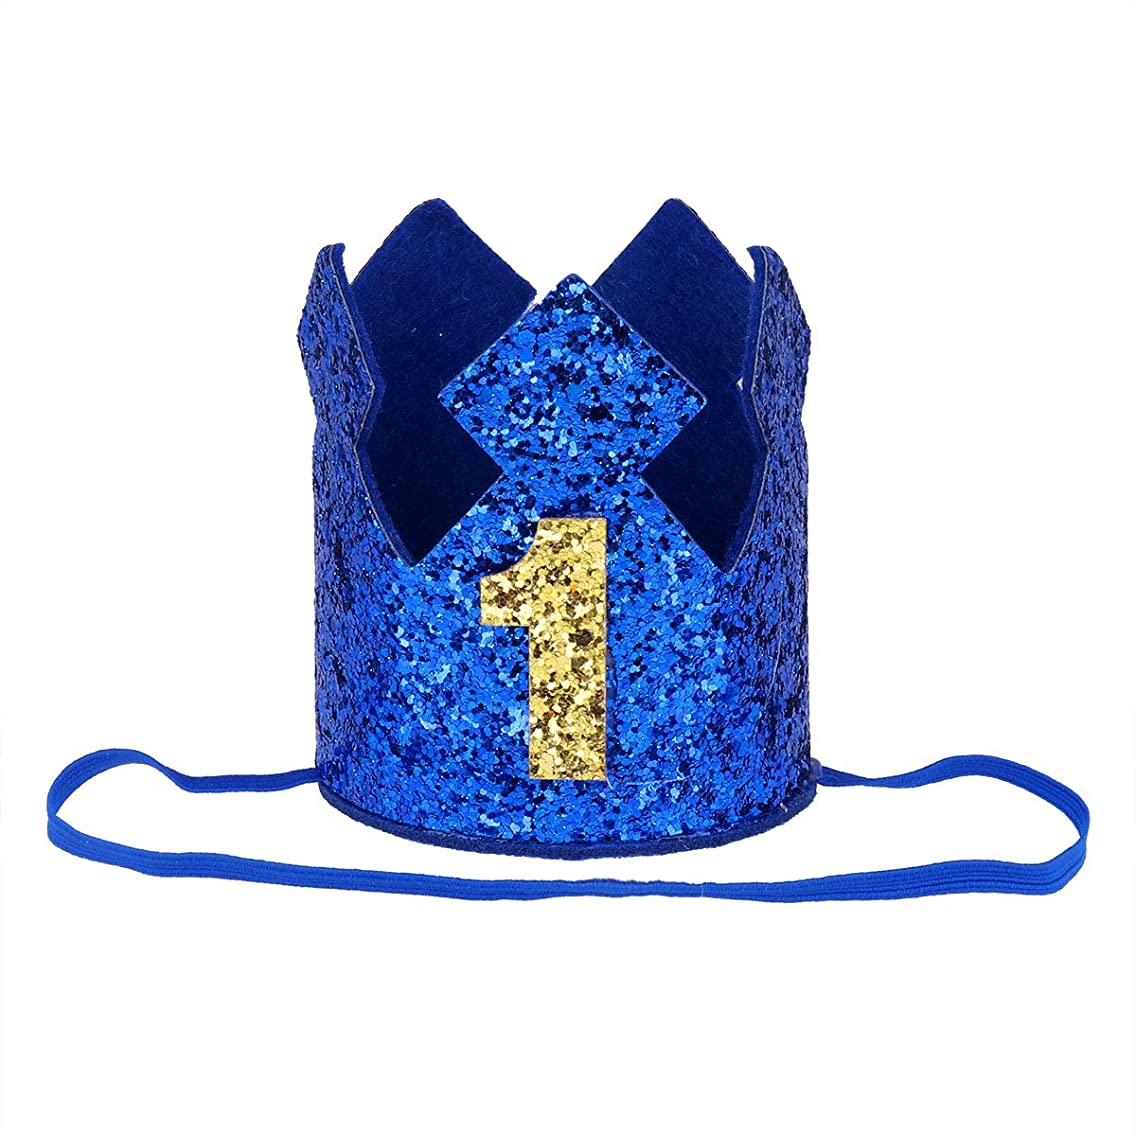 Alvivi Baby Boys Girls Sparkly Glittery First 1st Birthday Crown Prince Party Hat Headband Hand Wear Accessories Blue One Size